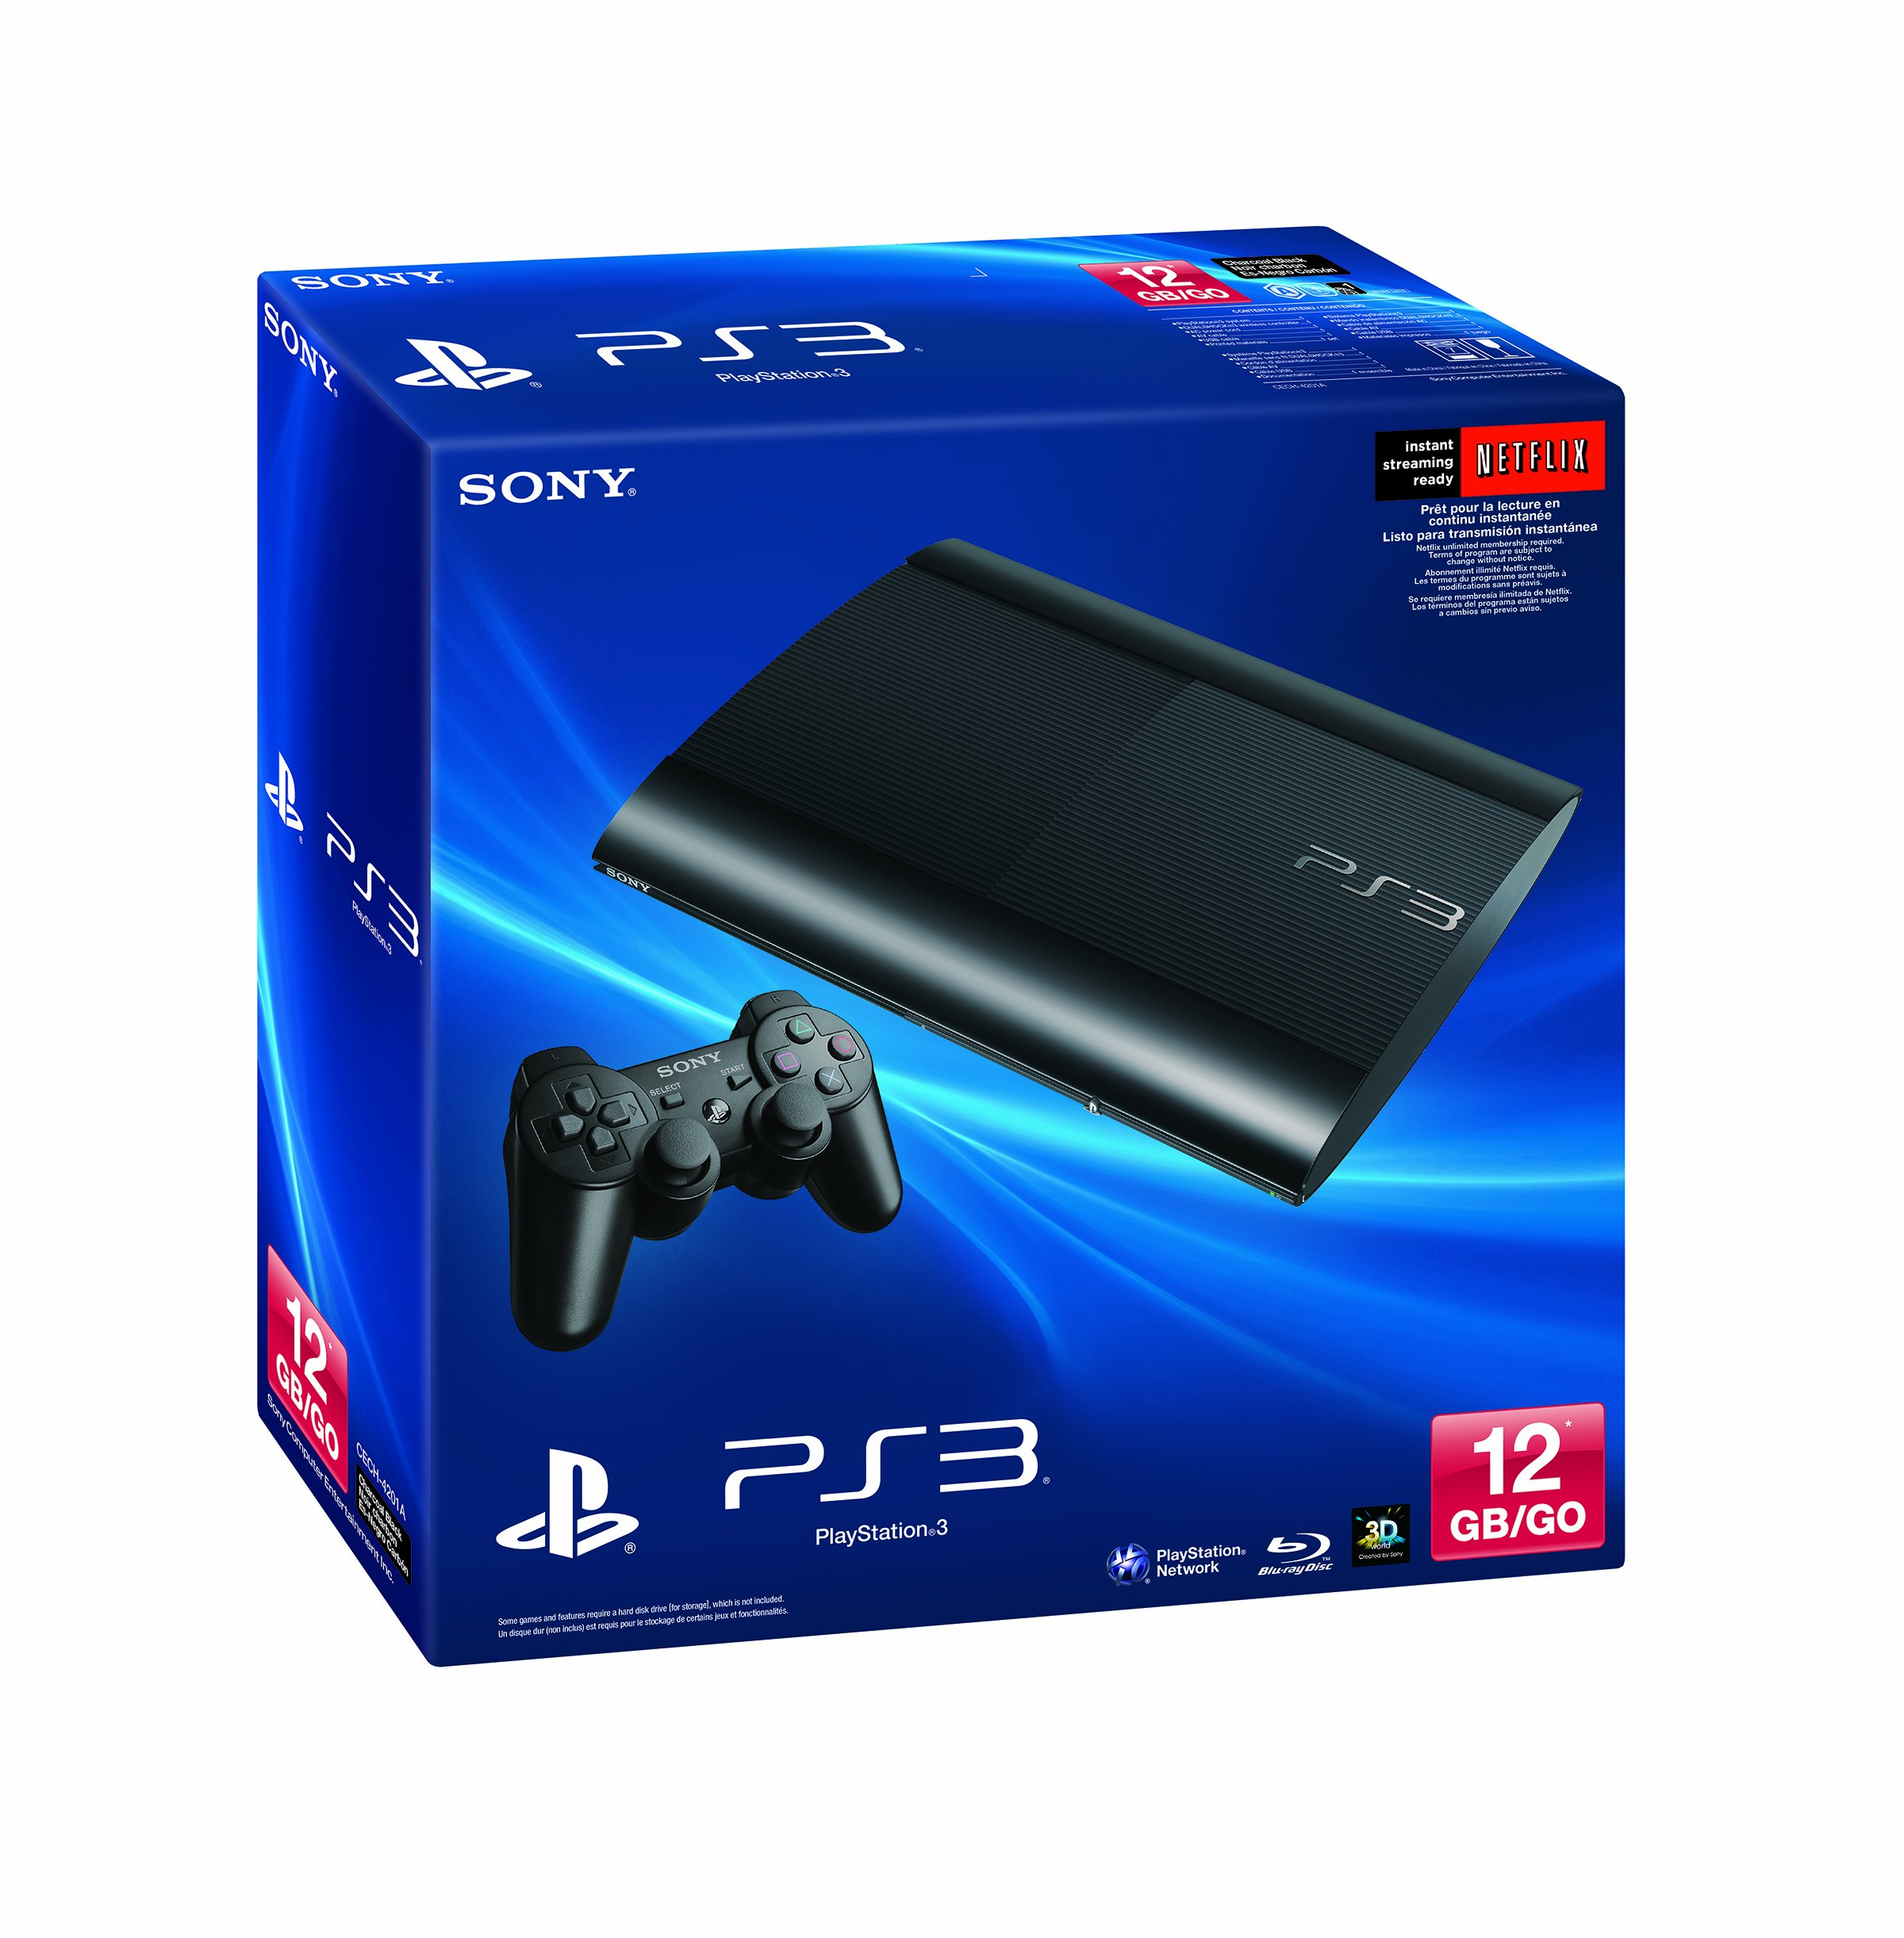 Sony Computer Entertainment Playstation 3 12GB System by Sony (Image #4)